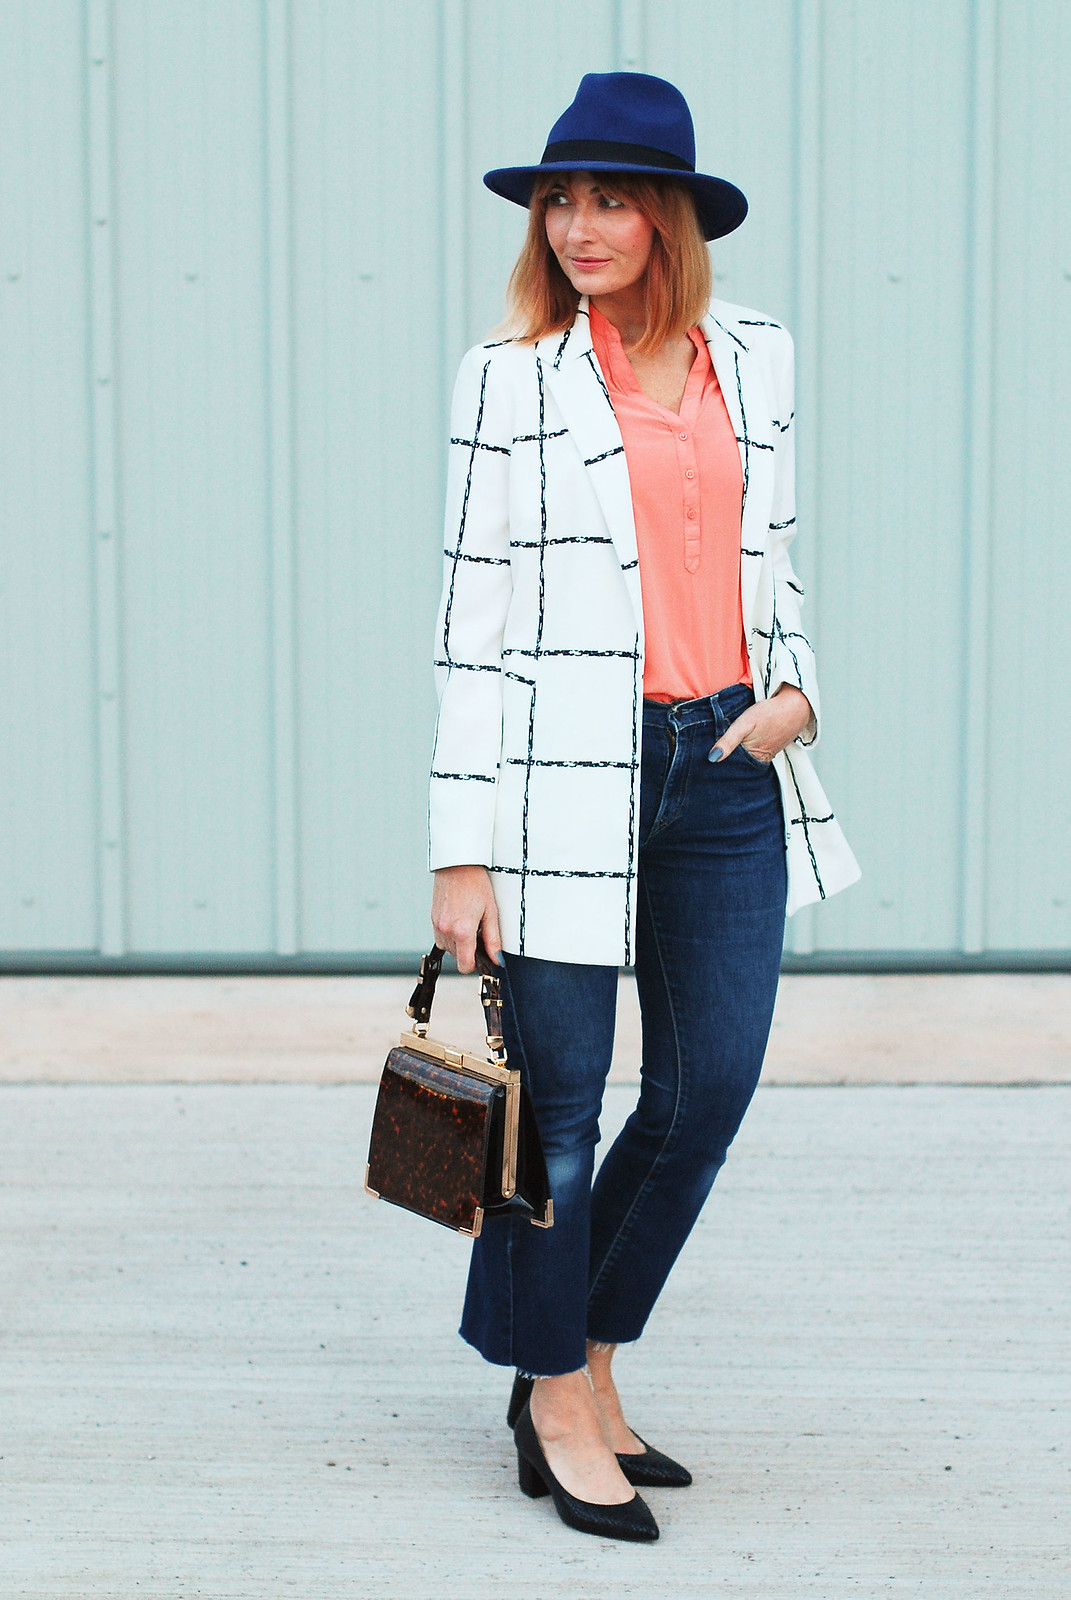 A smart casual look for AW16: Grid print black and white blazer, cropped flared jeans, blue fedora, peach shirt, faux croc block heeled shoes and tortoiseshell bag | Not Dressed As Lamb, over 40 style